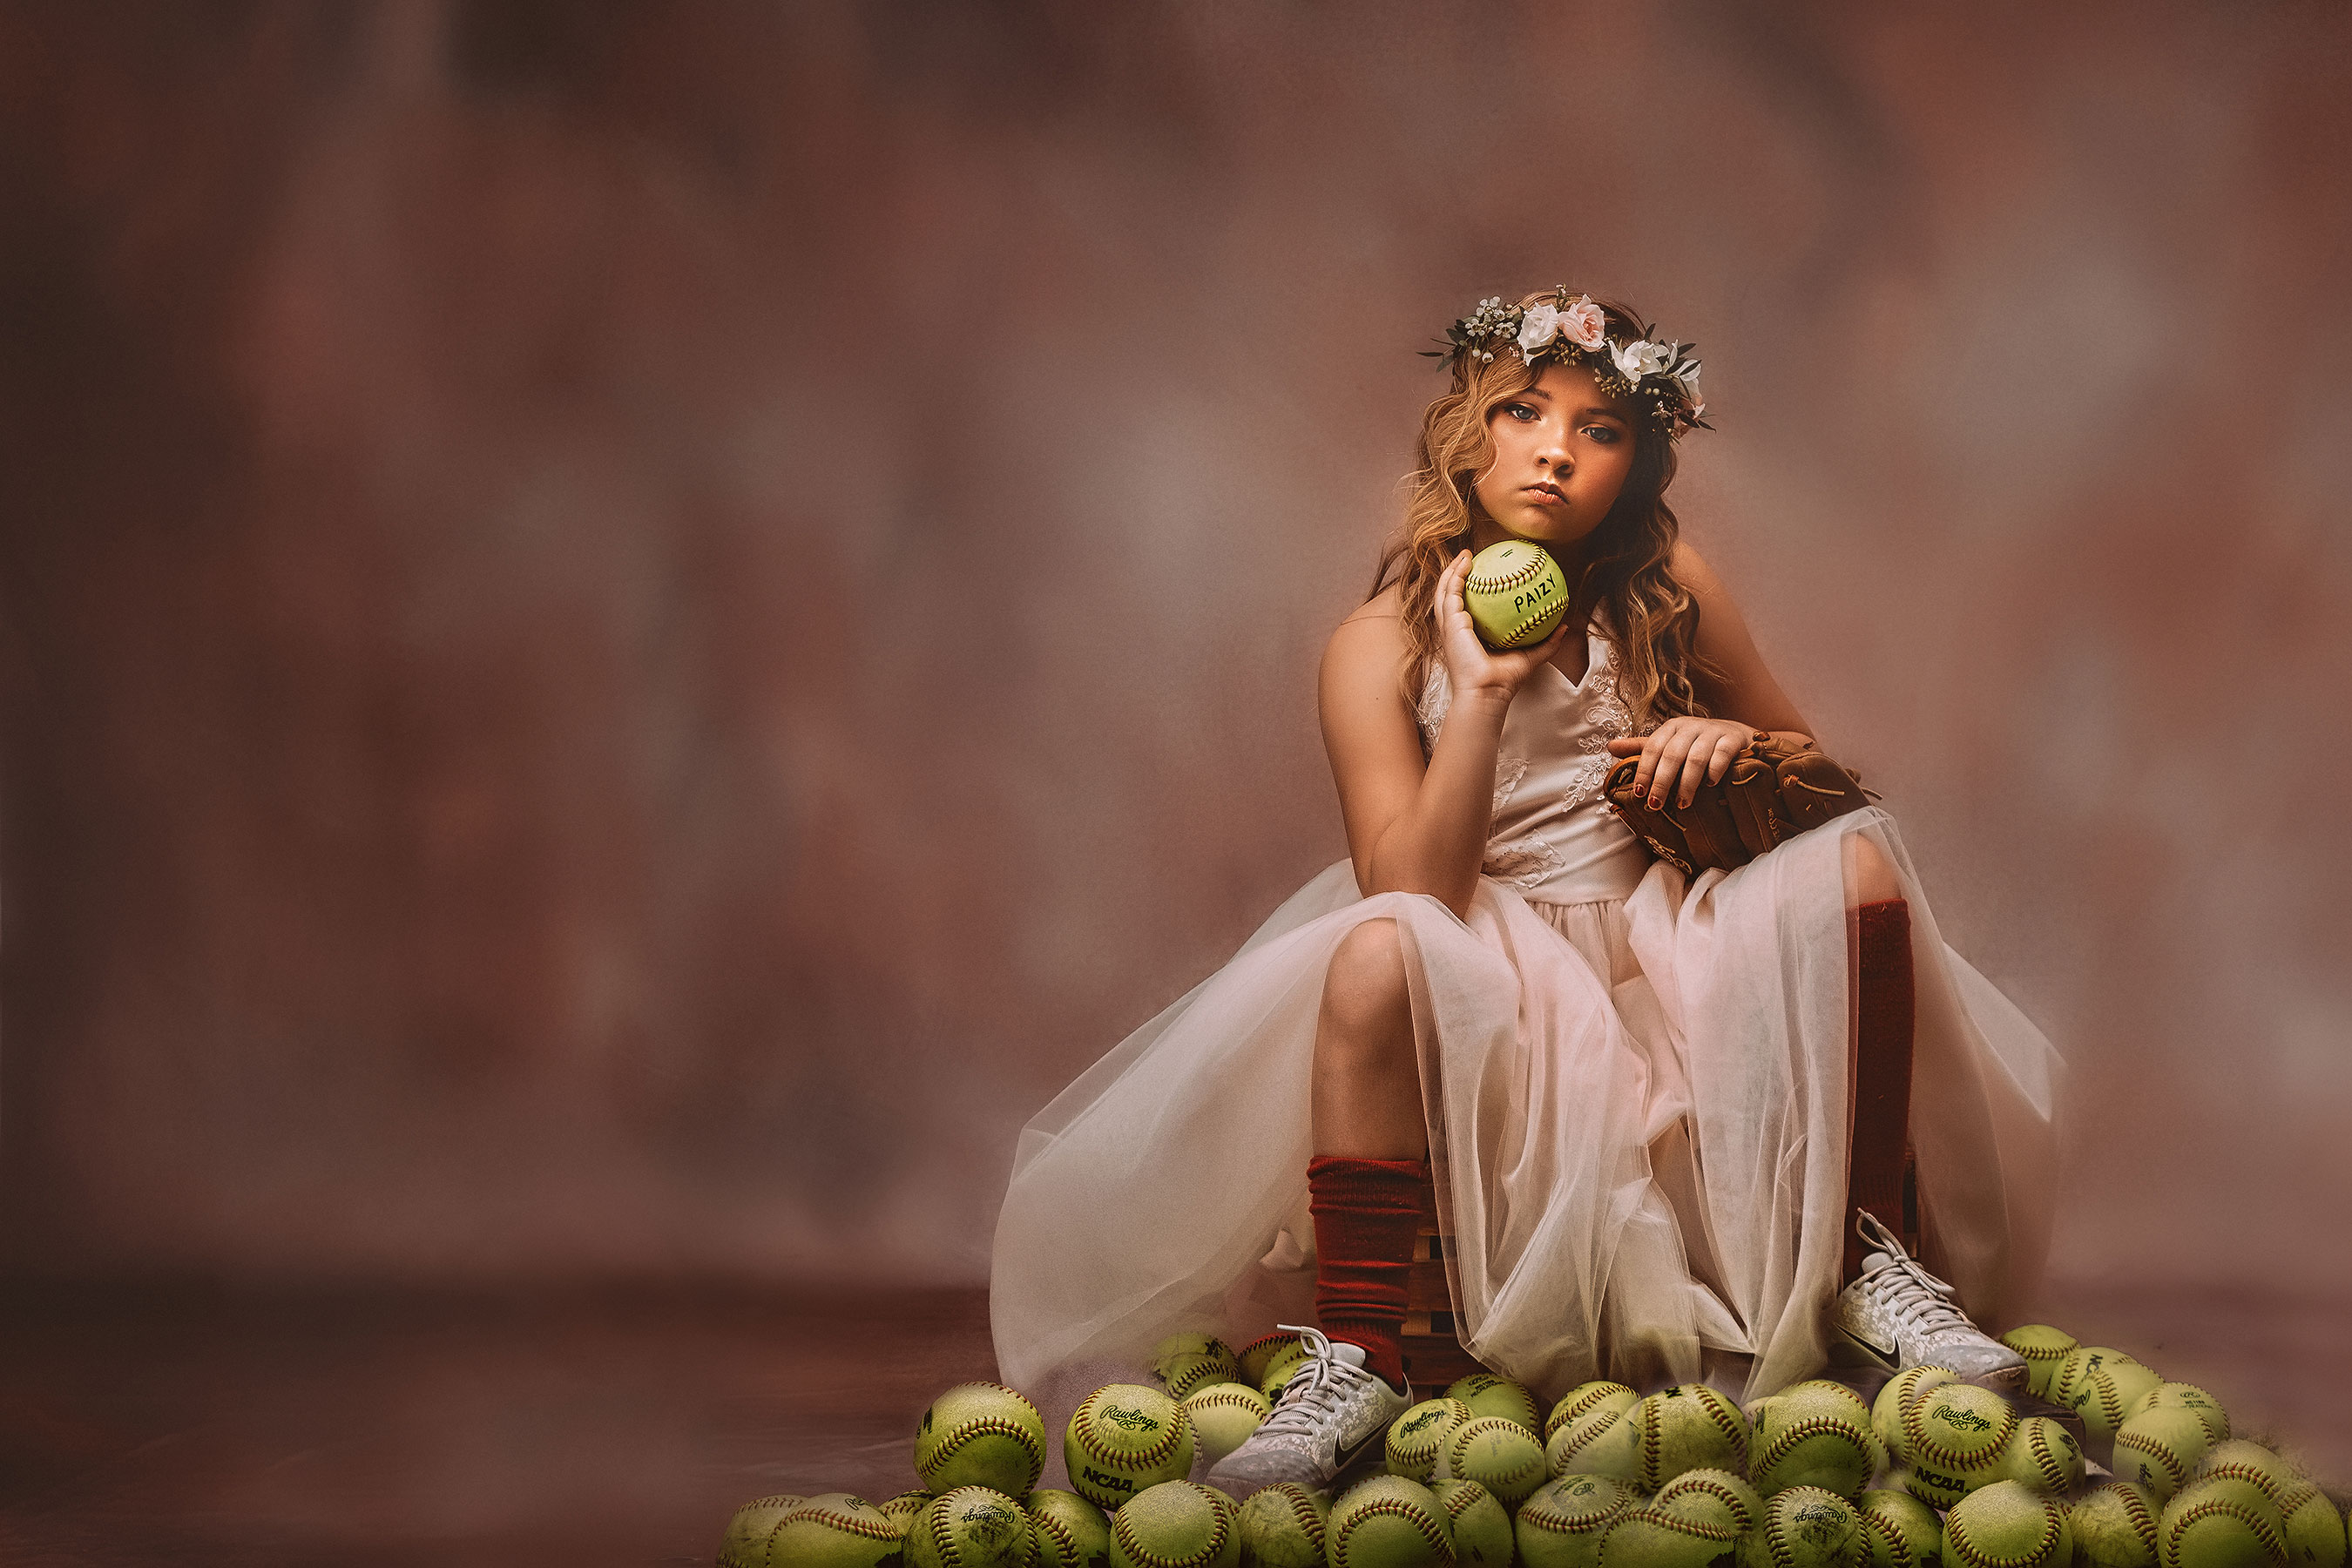 Athlete Princesses 6